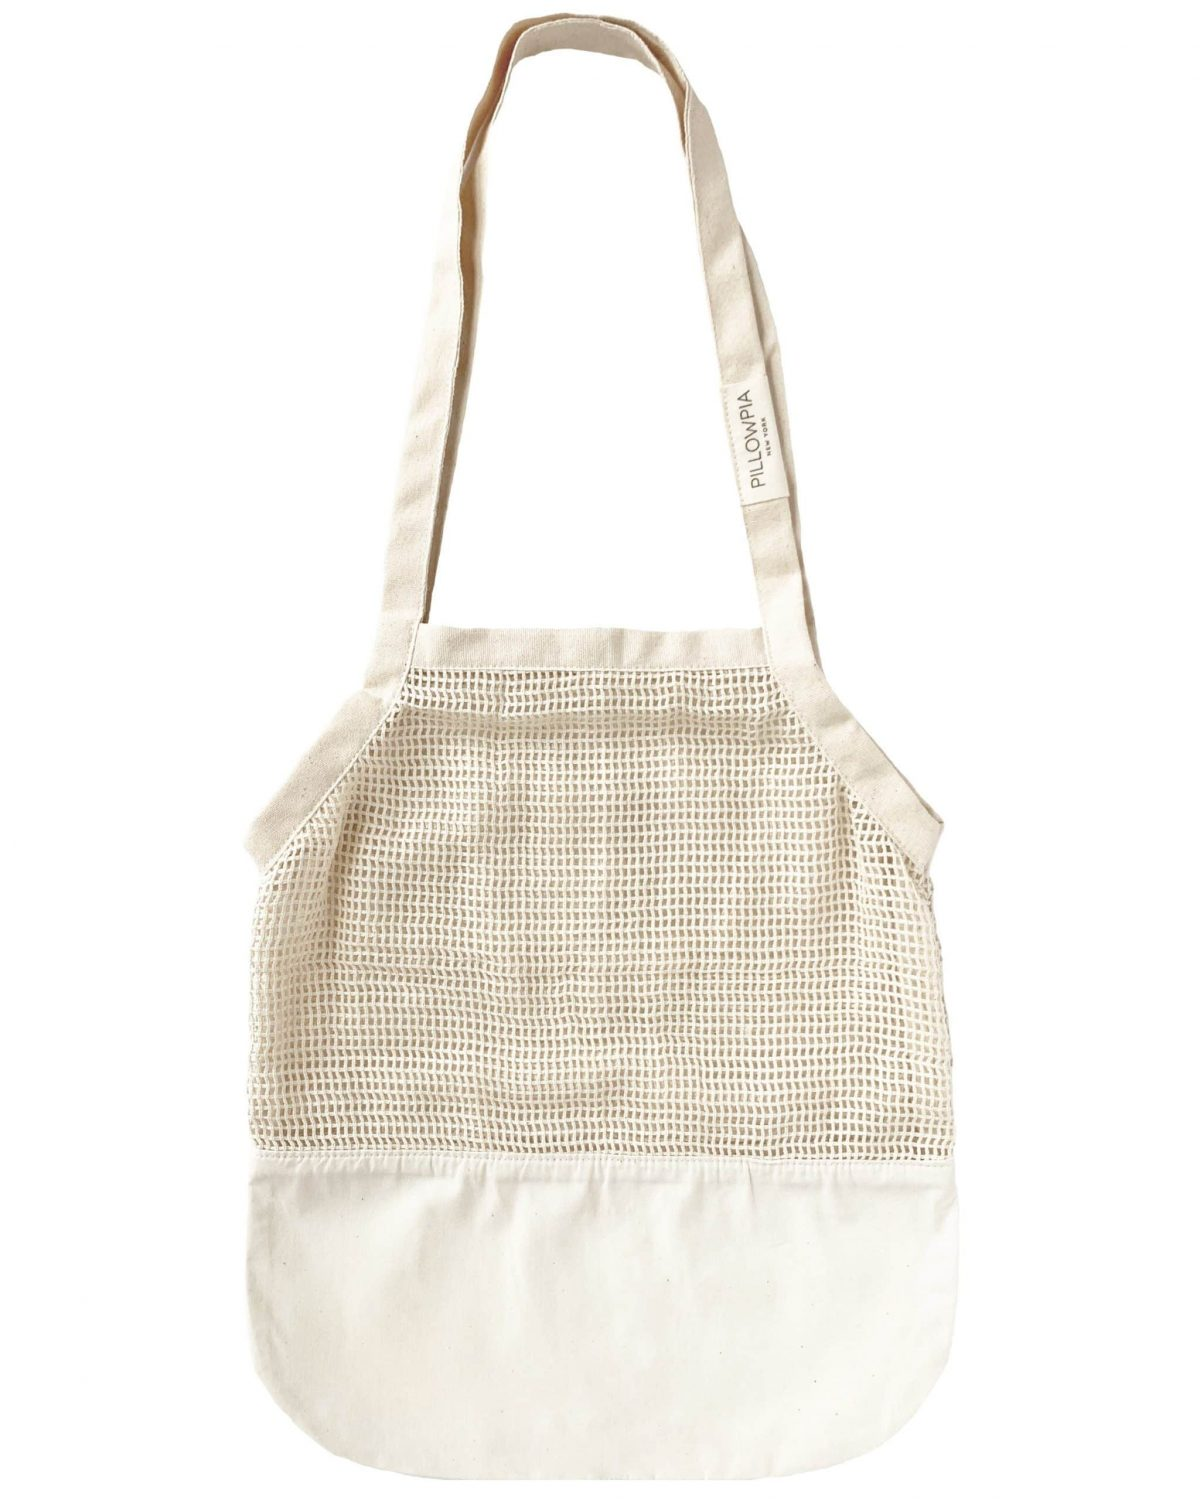 natural colored tote with netting detail